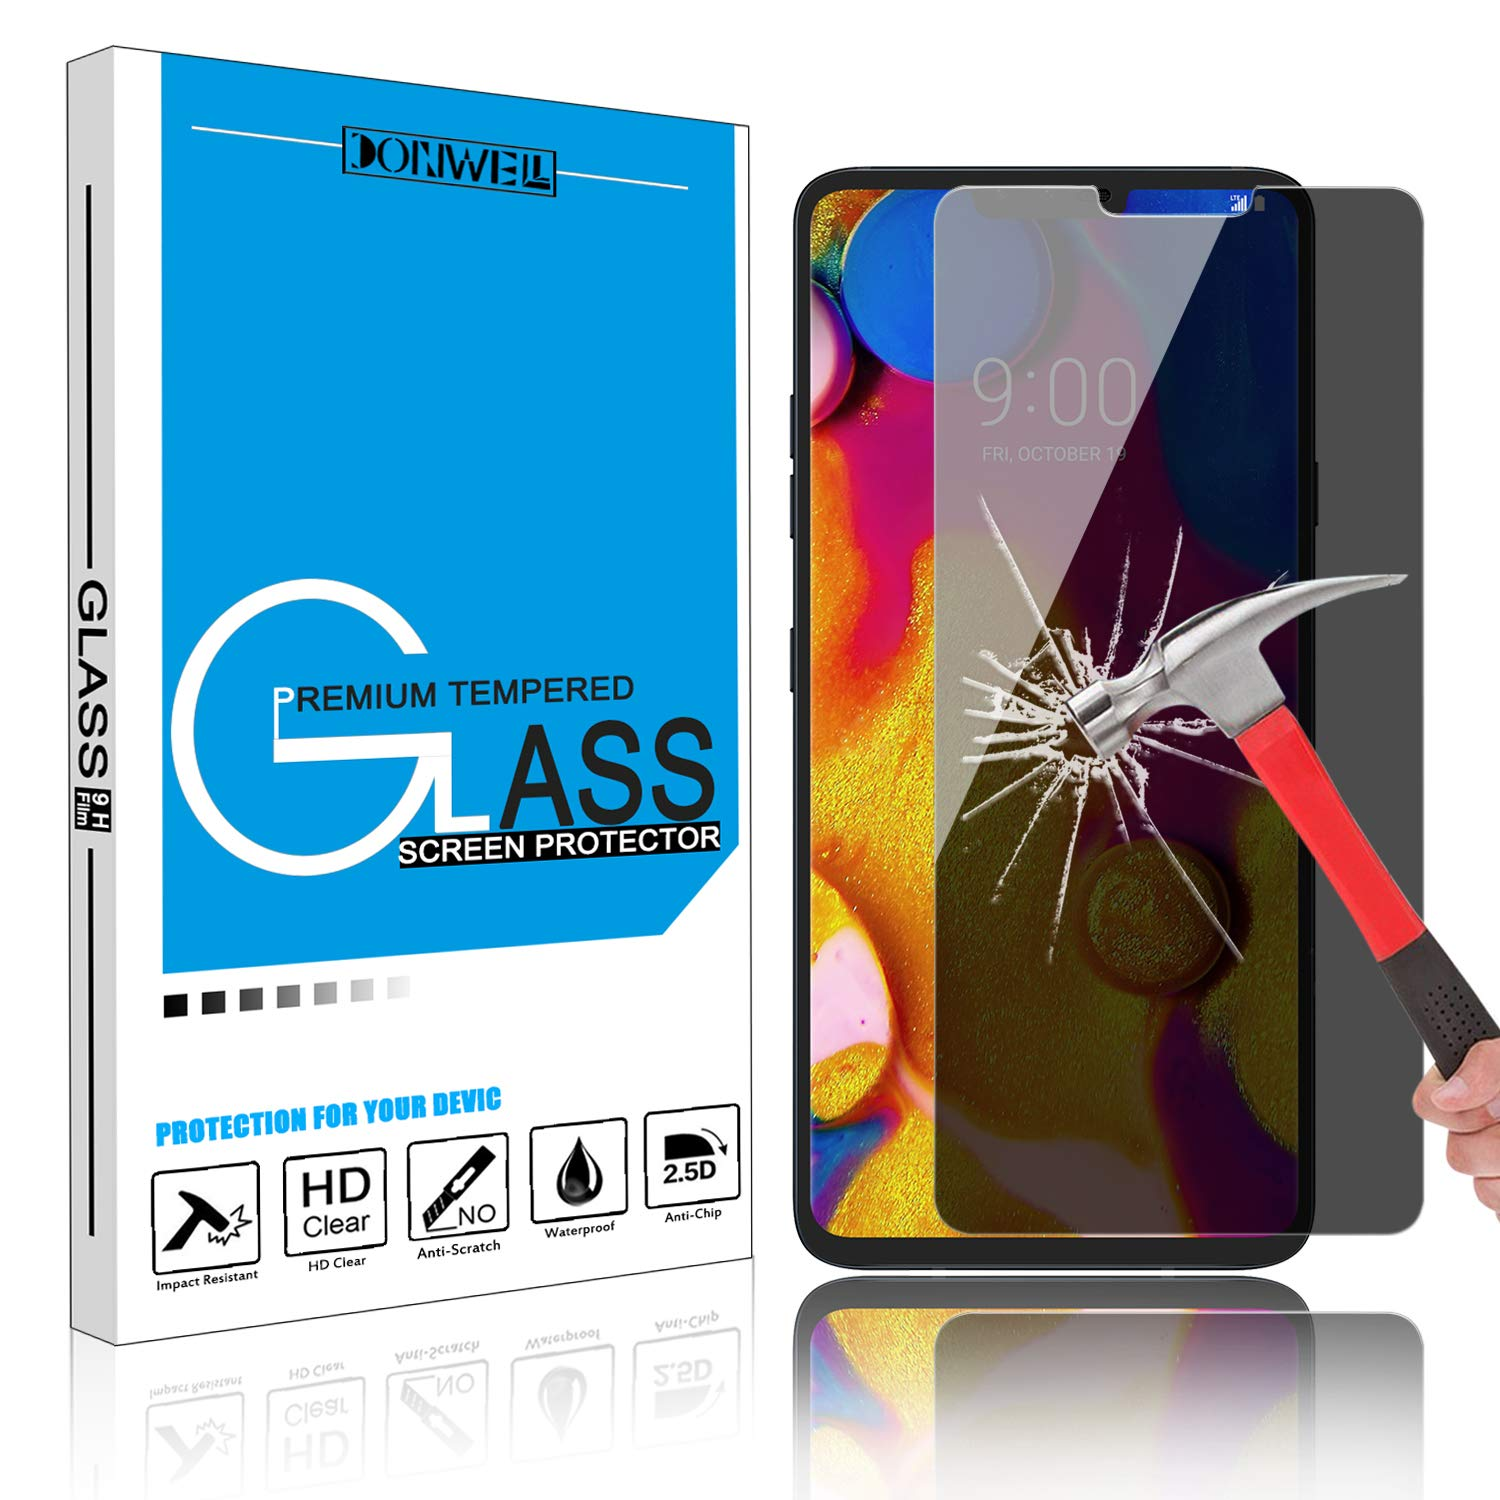 DONWELL LG V40 / LG V40 ThinQ Privacy Screen Protector Tempered Glass Anti Spy 9H Hardness Screen Protector for LG V40 2018 (1 Pack)